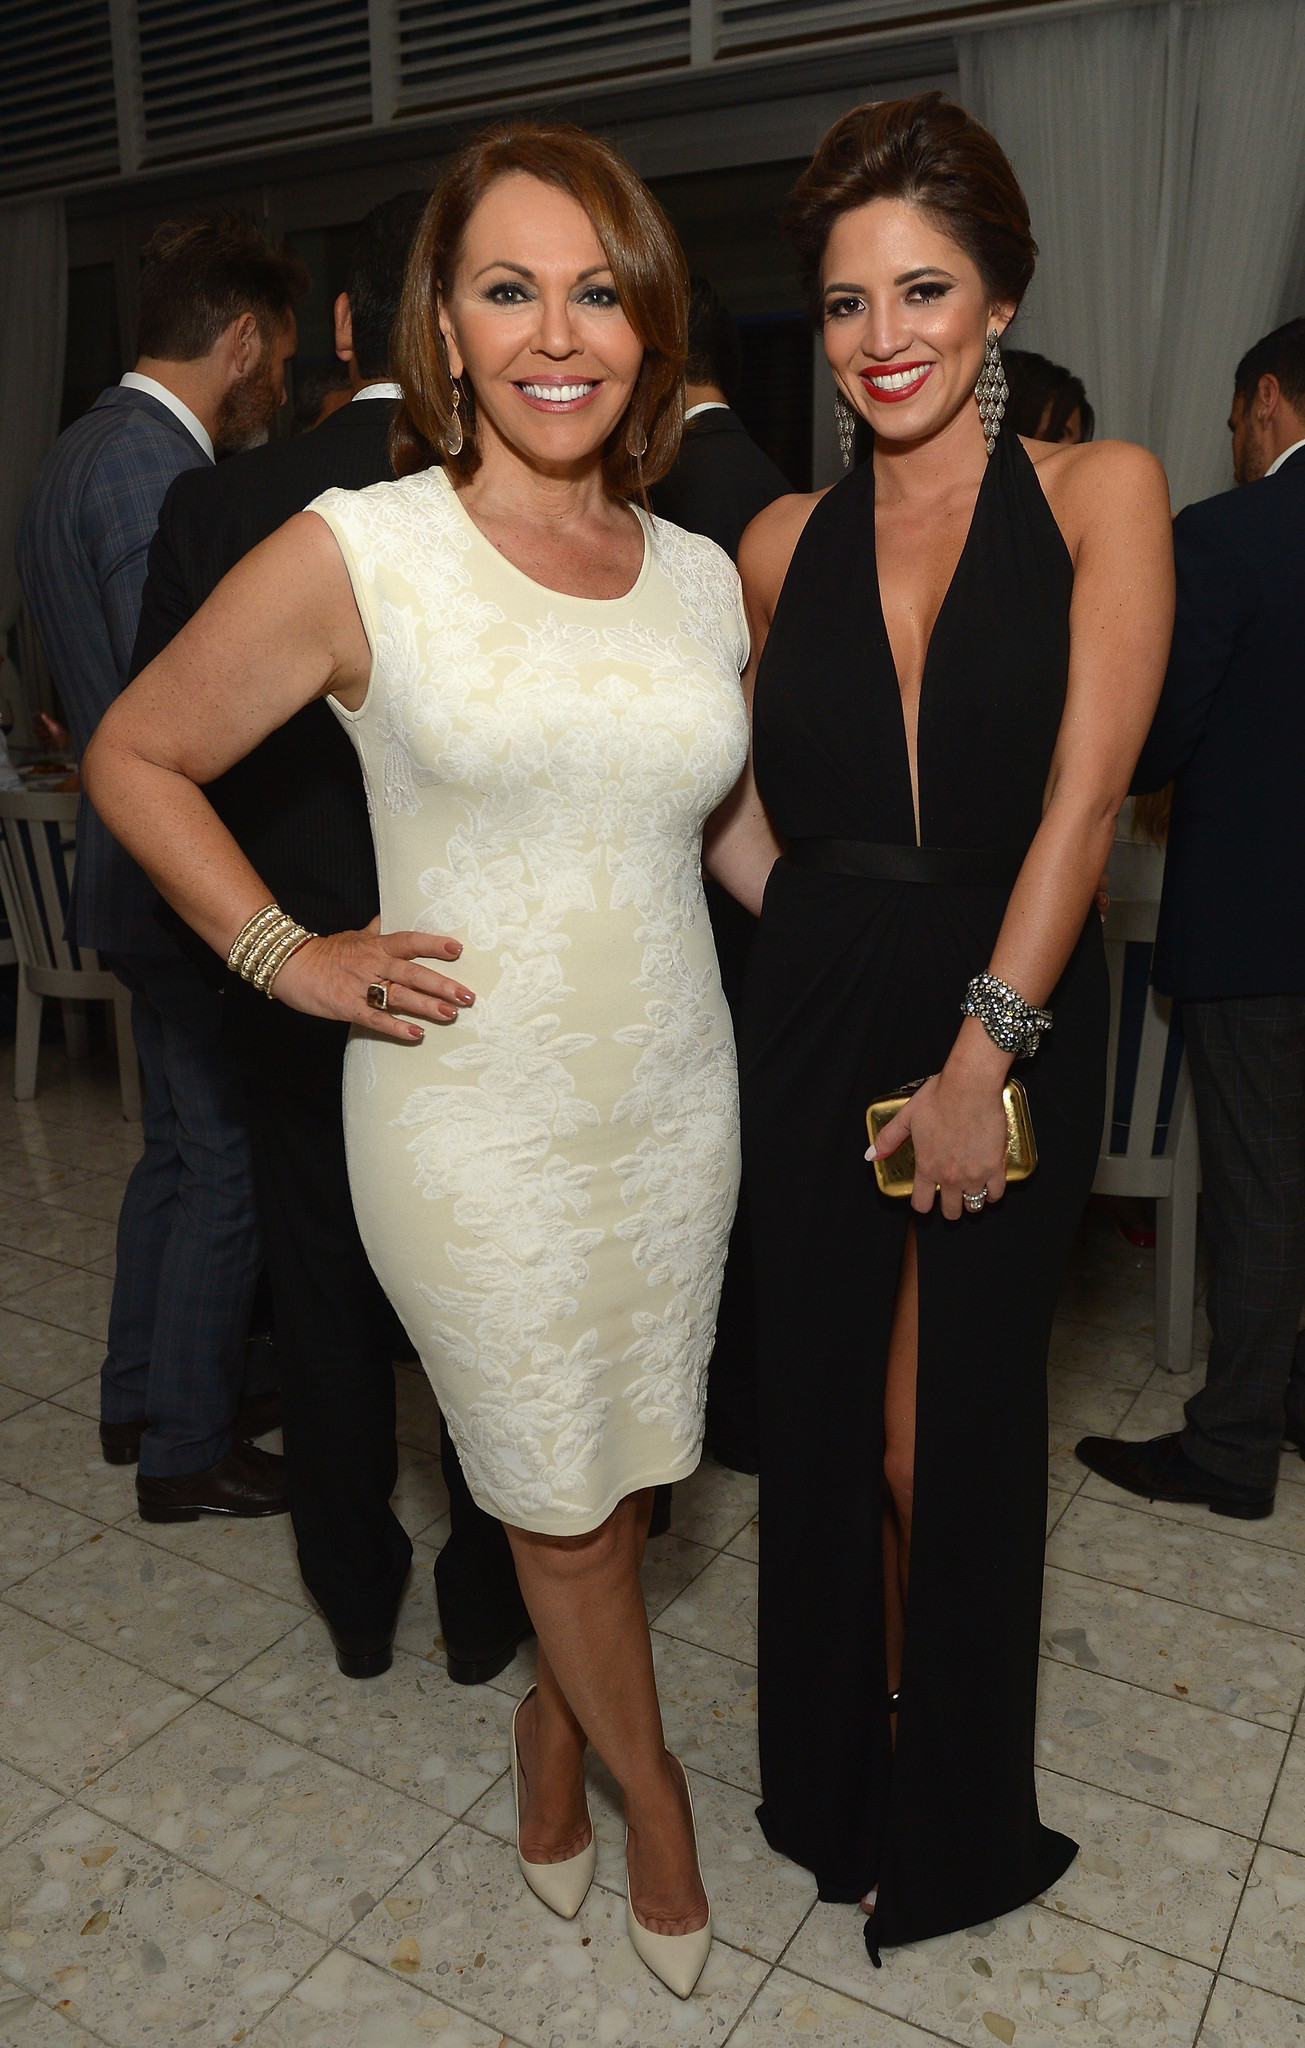 Society Scene photos - Haute Living Honors Mark And Rhea Burnett At Fontainbleau Miami Beach